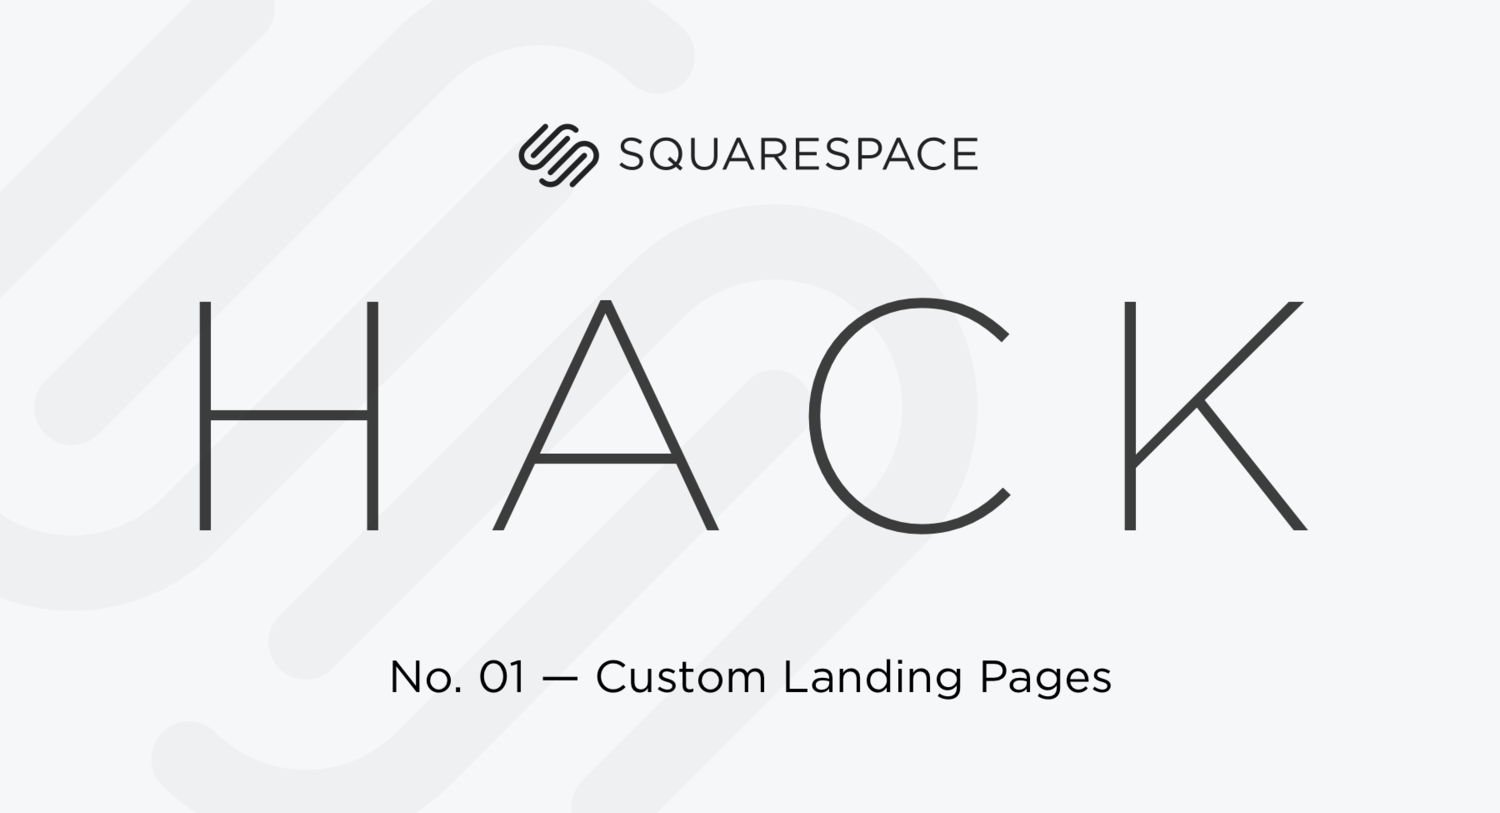 The Best Guide To Leadpages And Squarespace